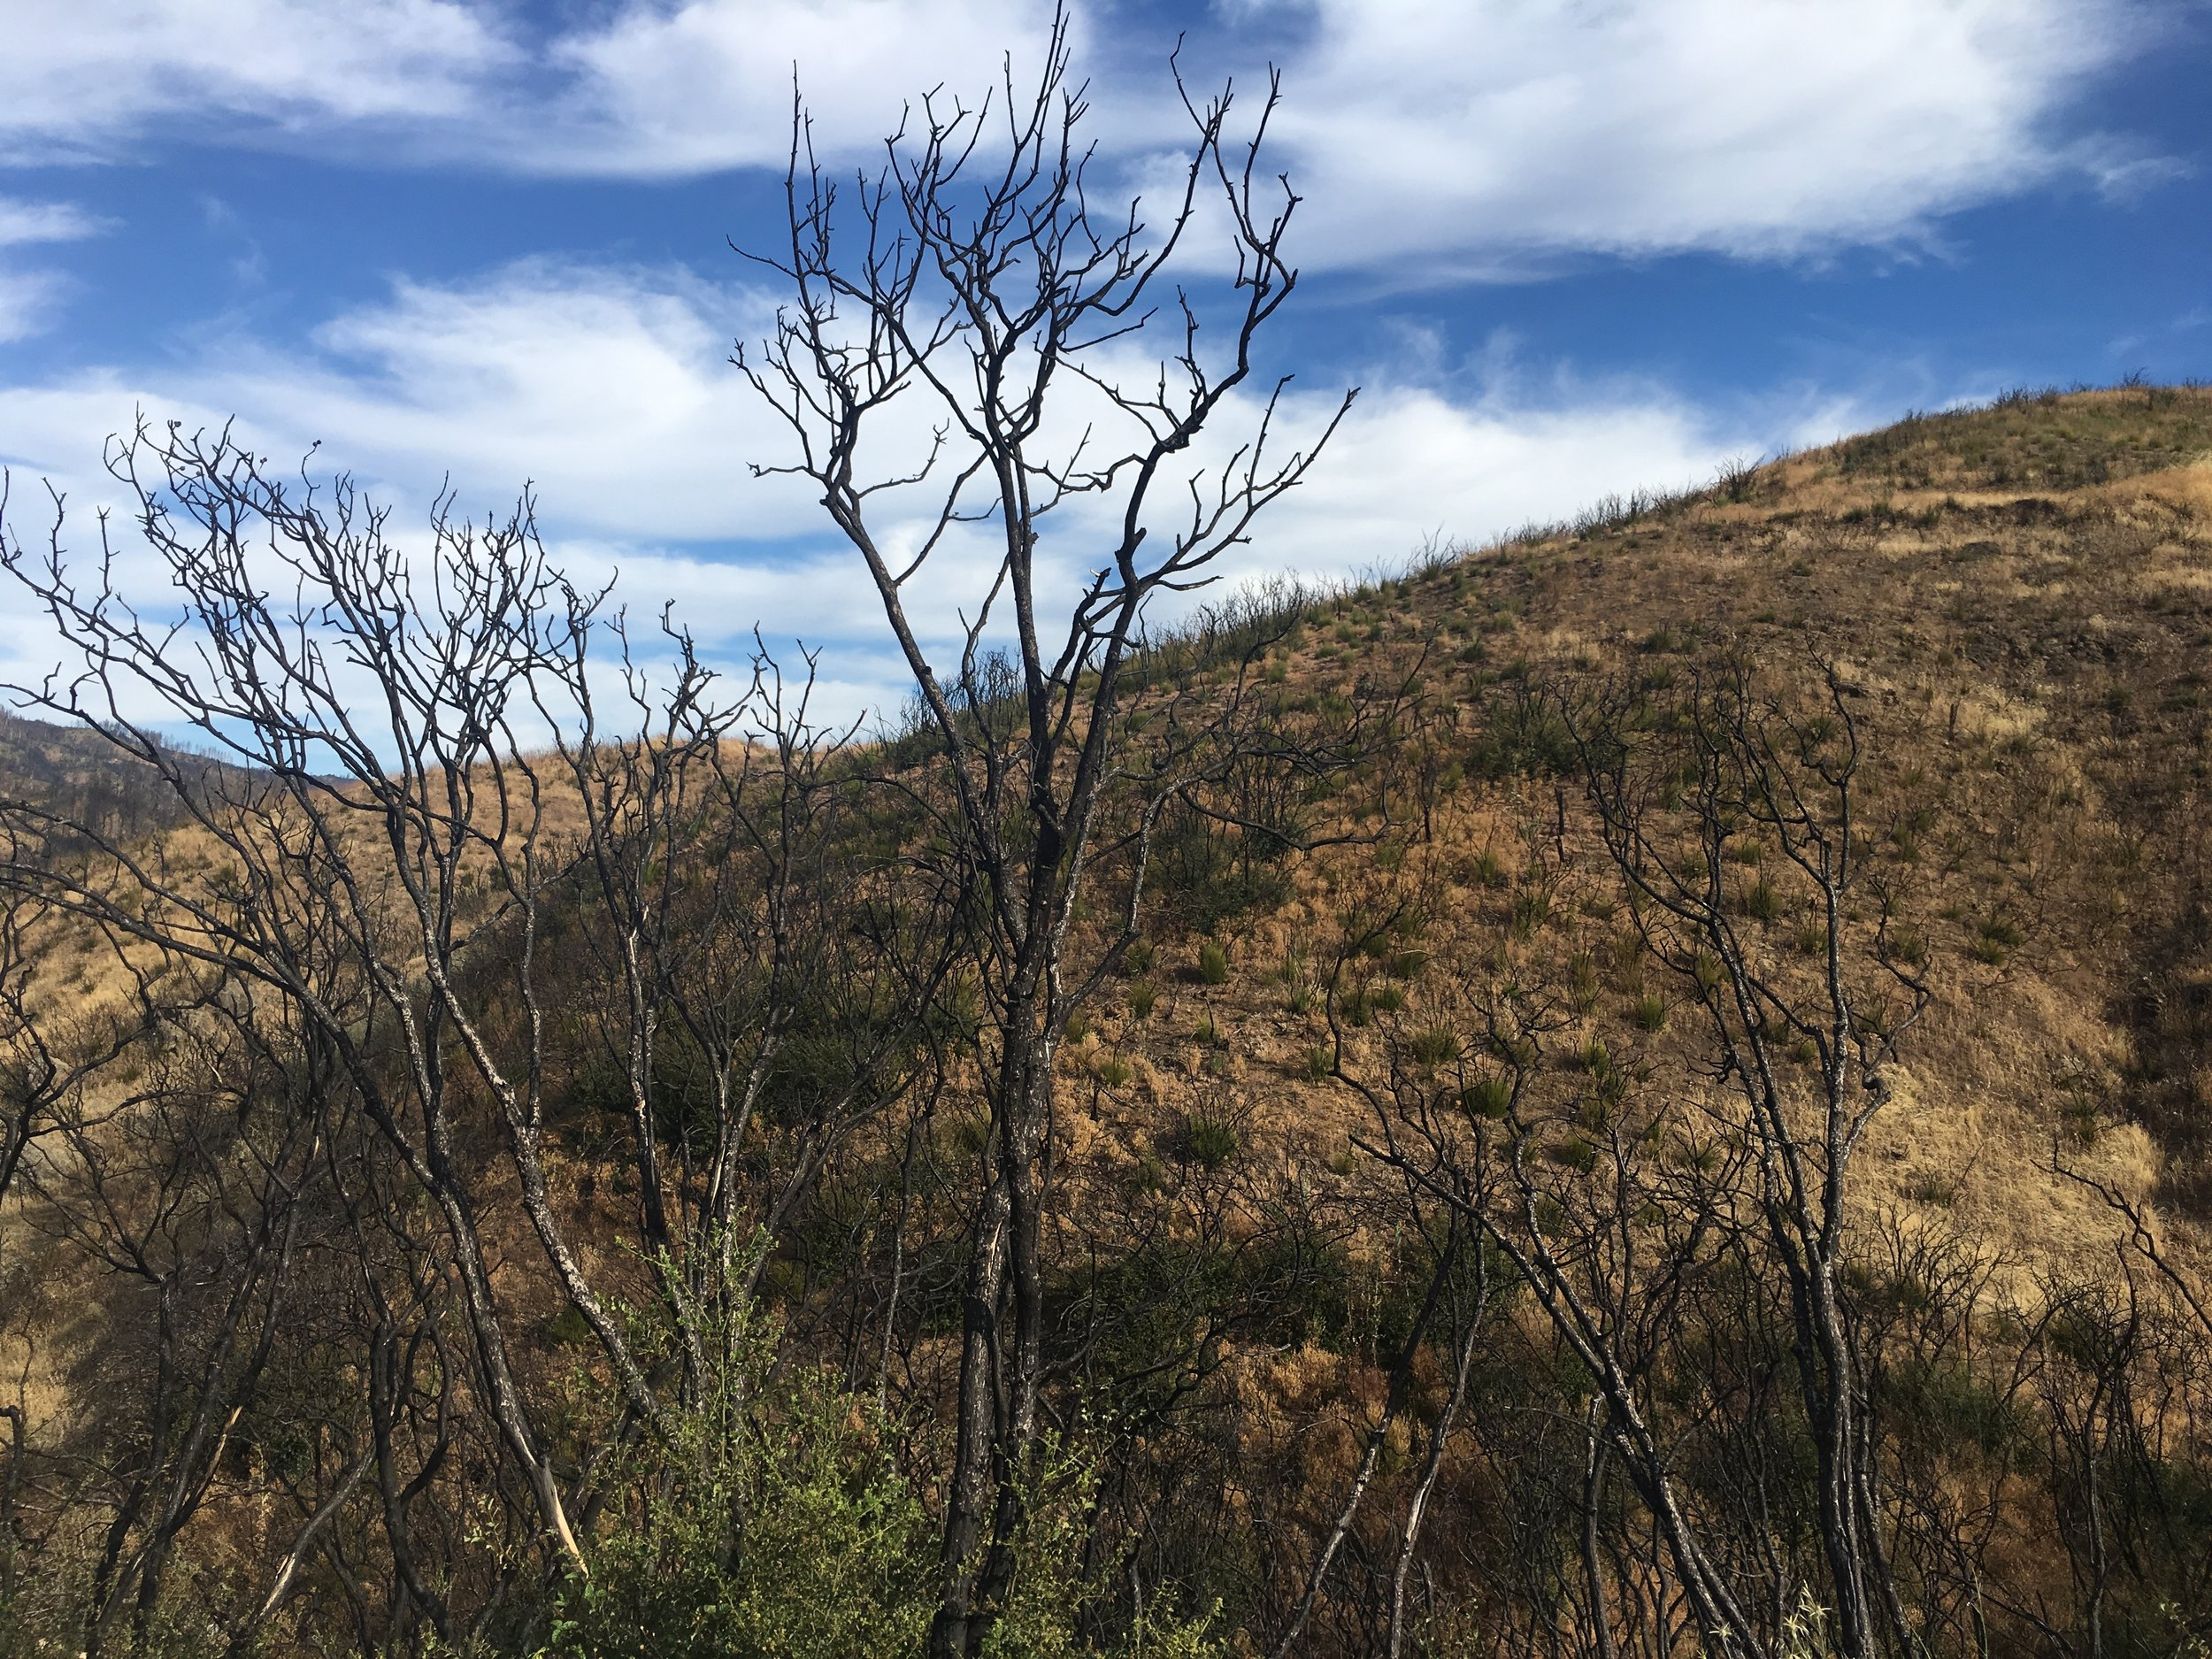 - The burn area on 175 is still a reminder of the fires in 2018.